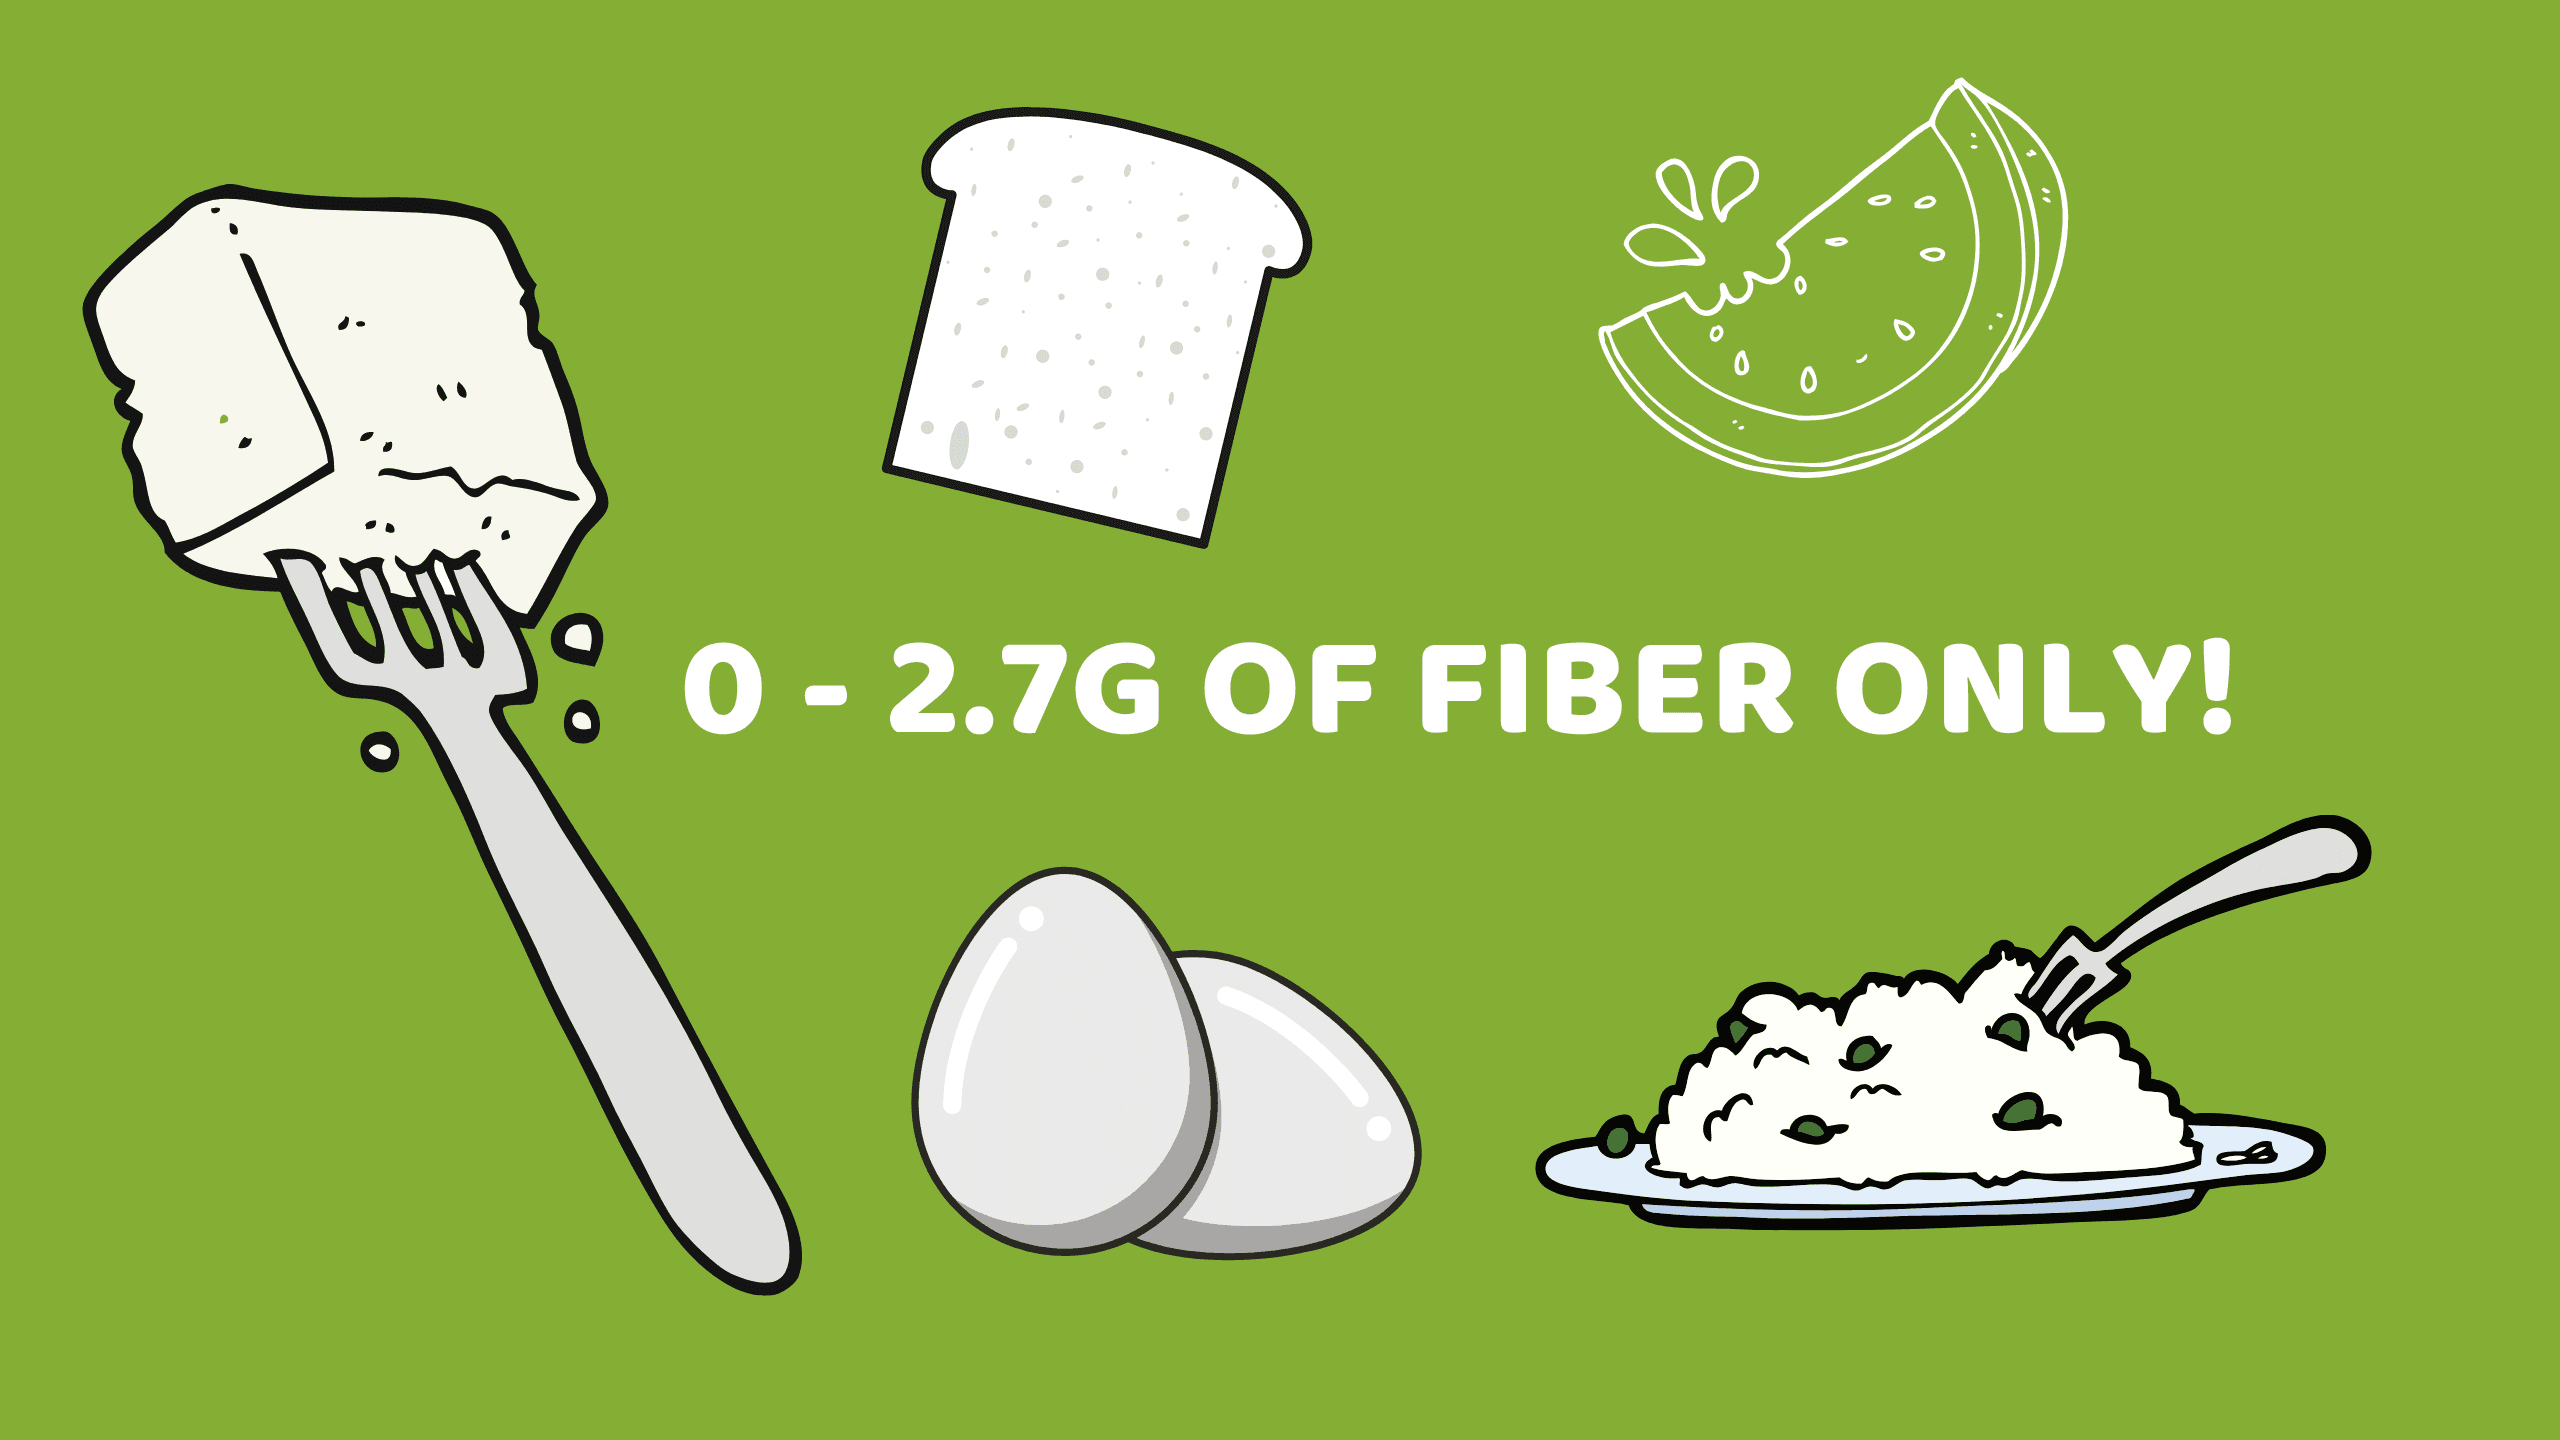 19 Foods That Are Super Low In Fiber